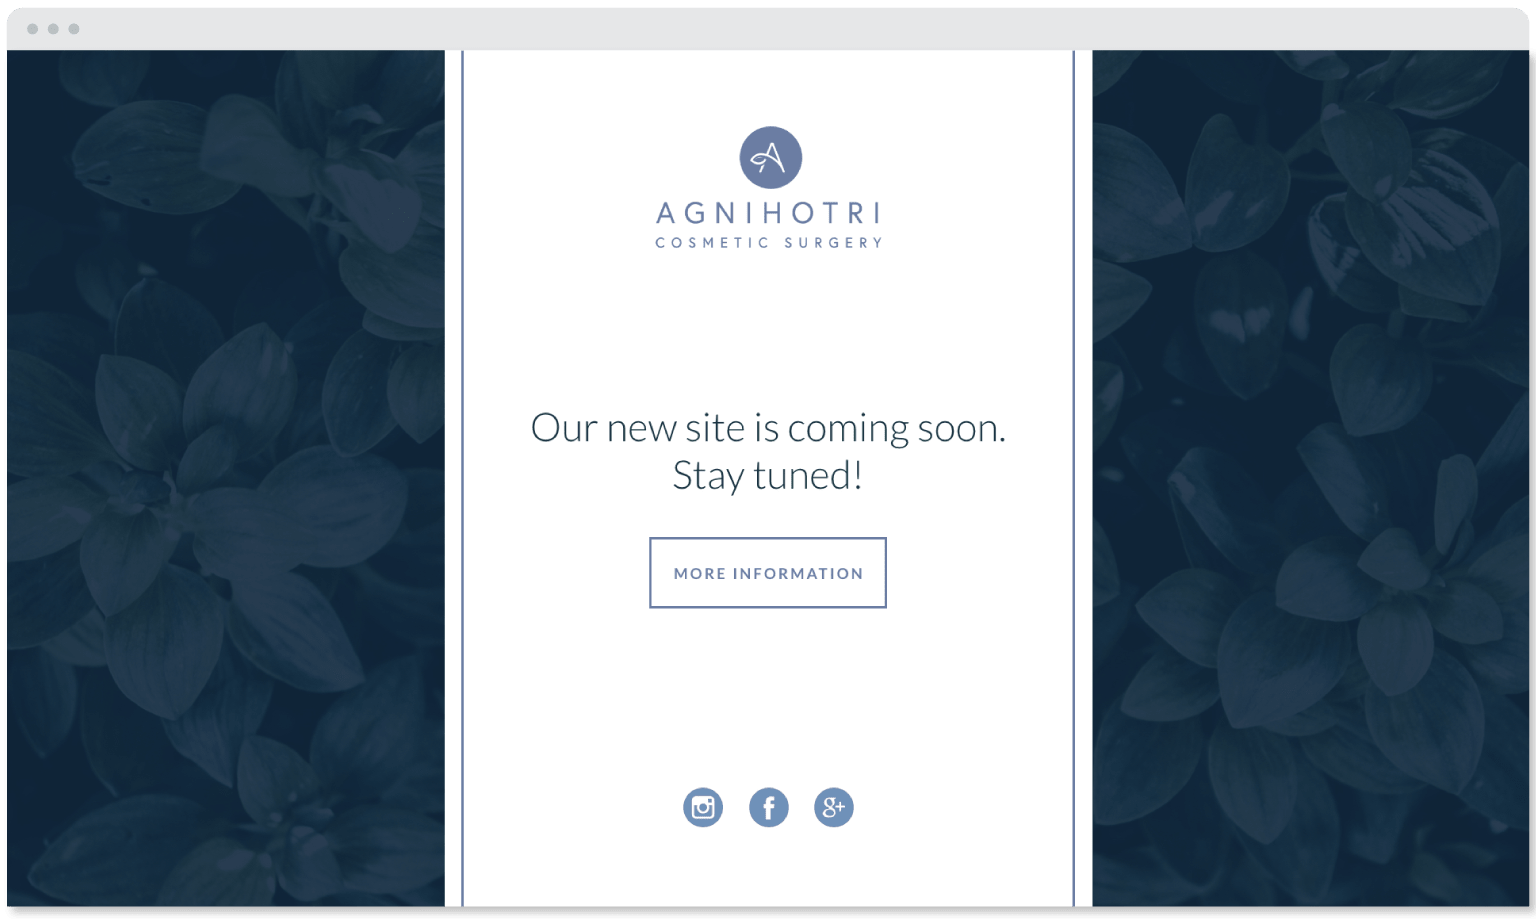 Agnihotri Cosmetic Surgery website landing page